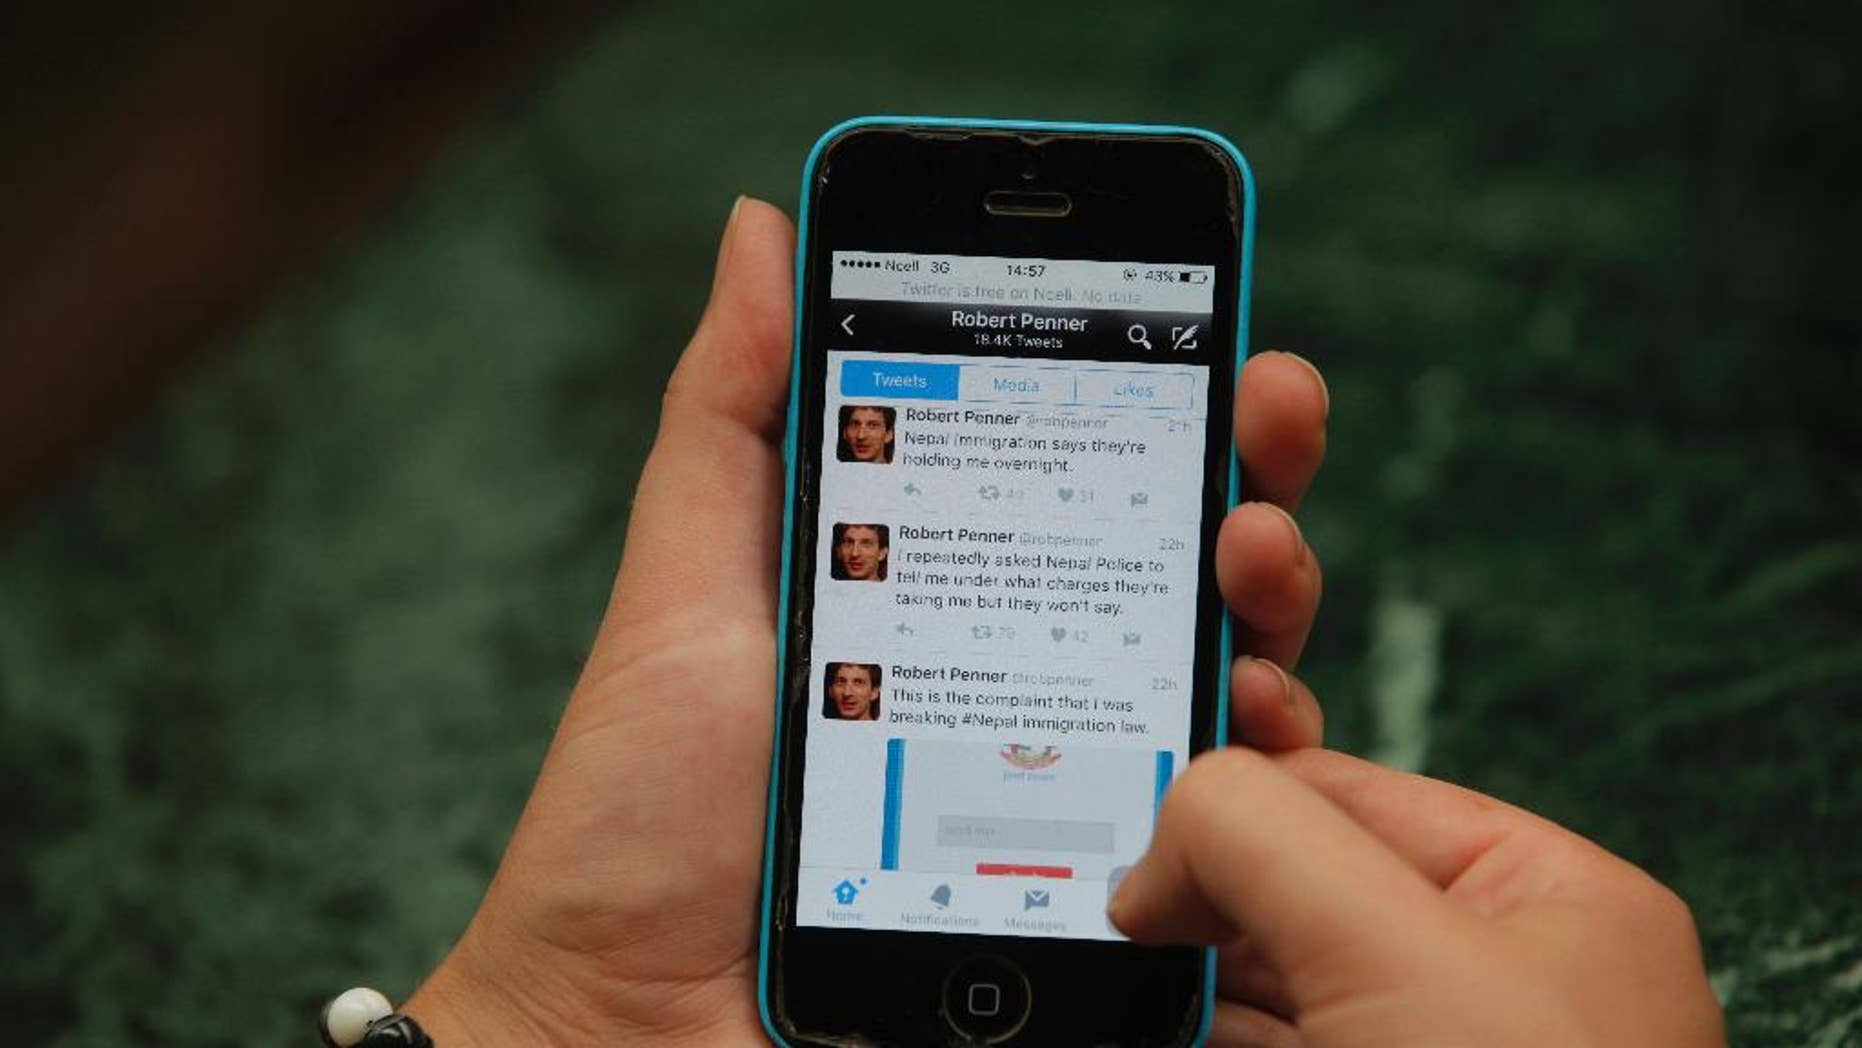 Twitter page of Canadian man, Robert Penner is seen on the screen of a mobile phone in Kathmandu, Nepal, Tuesday, May 3, 2016. Nepalese officials say they have ordered Penner to leave the country within two days for posting messages on social media that could disturb social harmony. (AP Photo/Niranjan Shrestha)